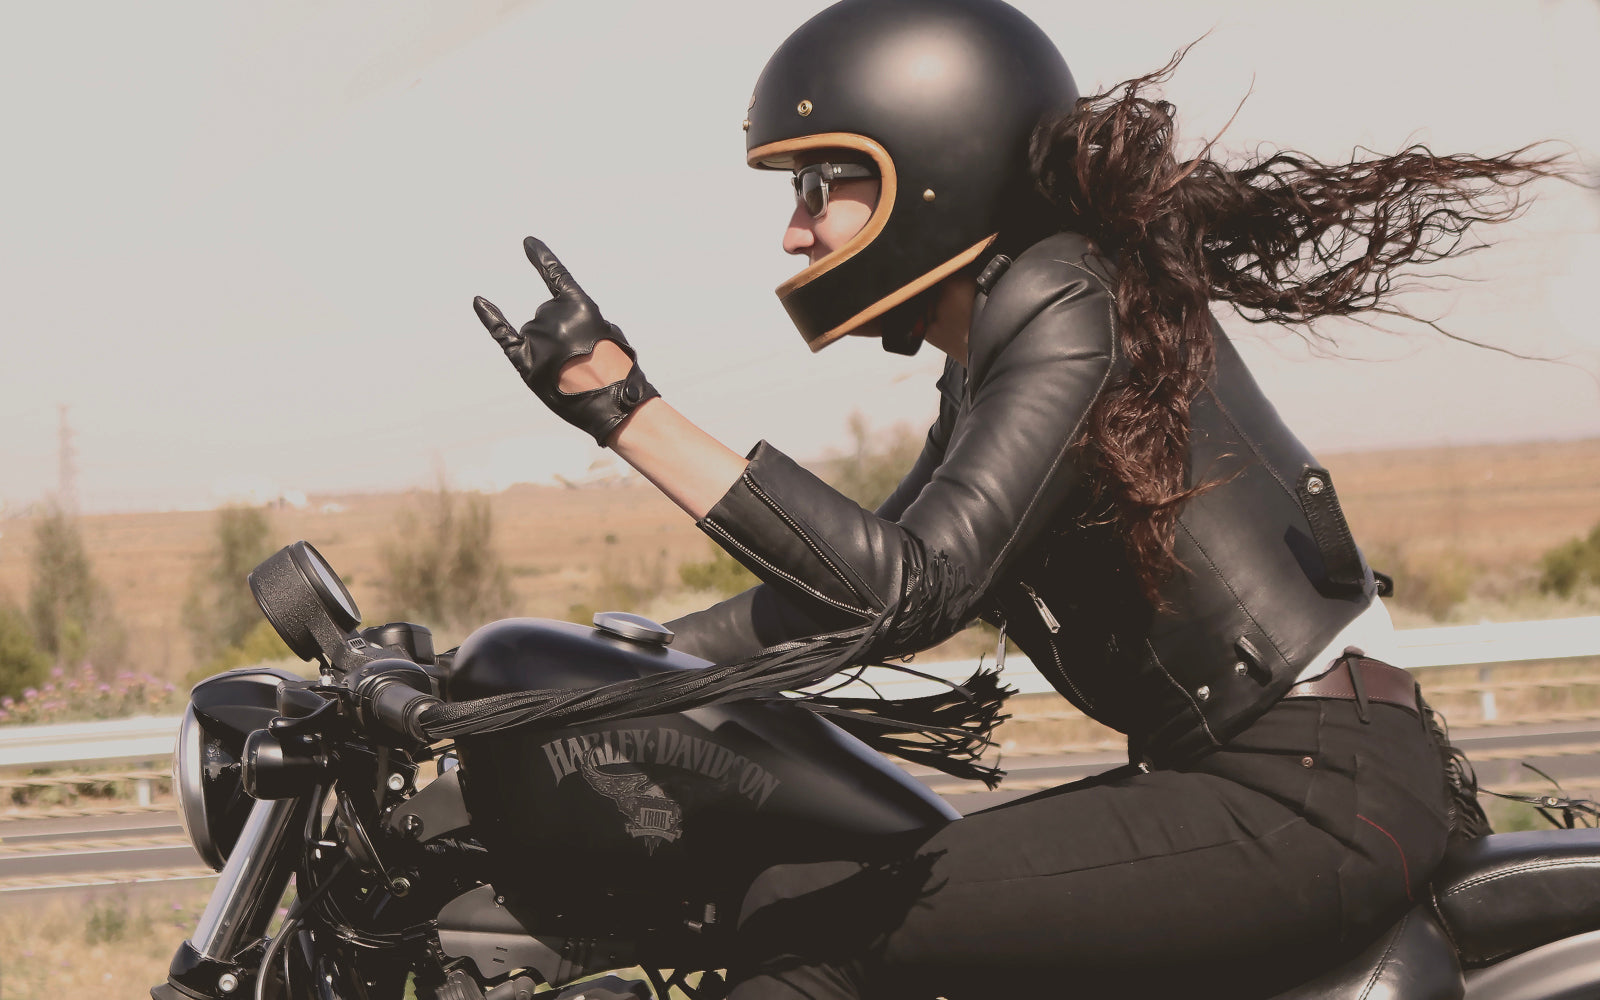 Moto Femmes Women S Motorcycle Gear And Accessories